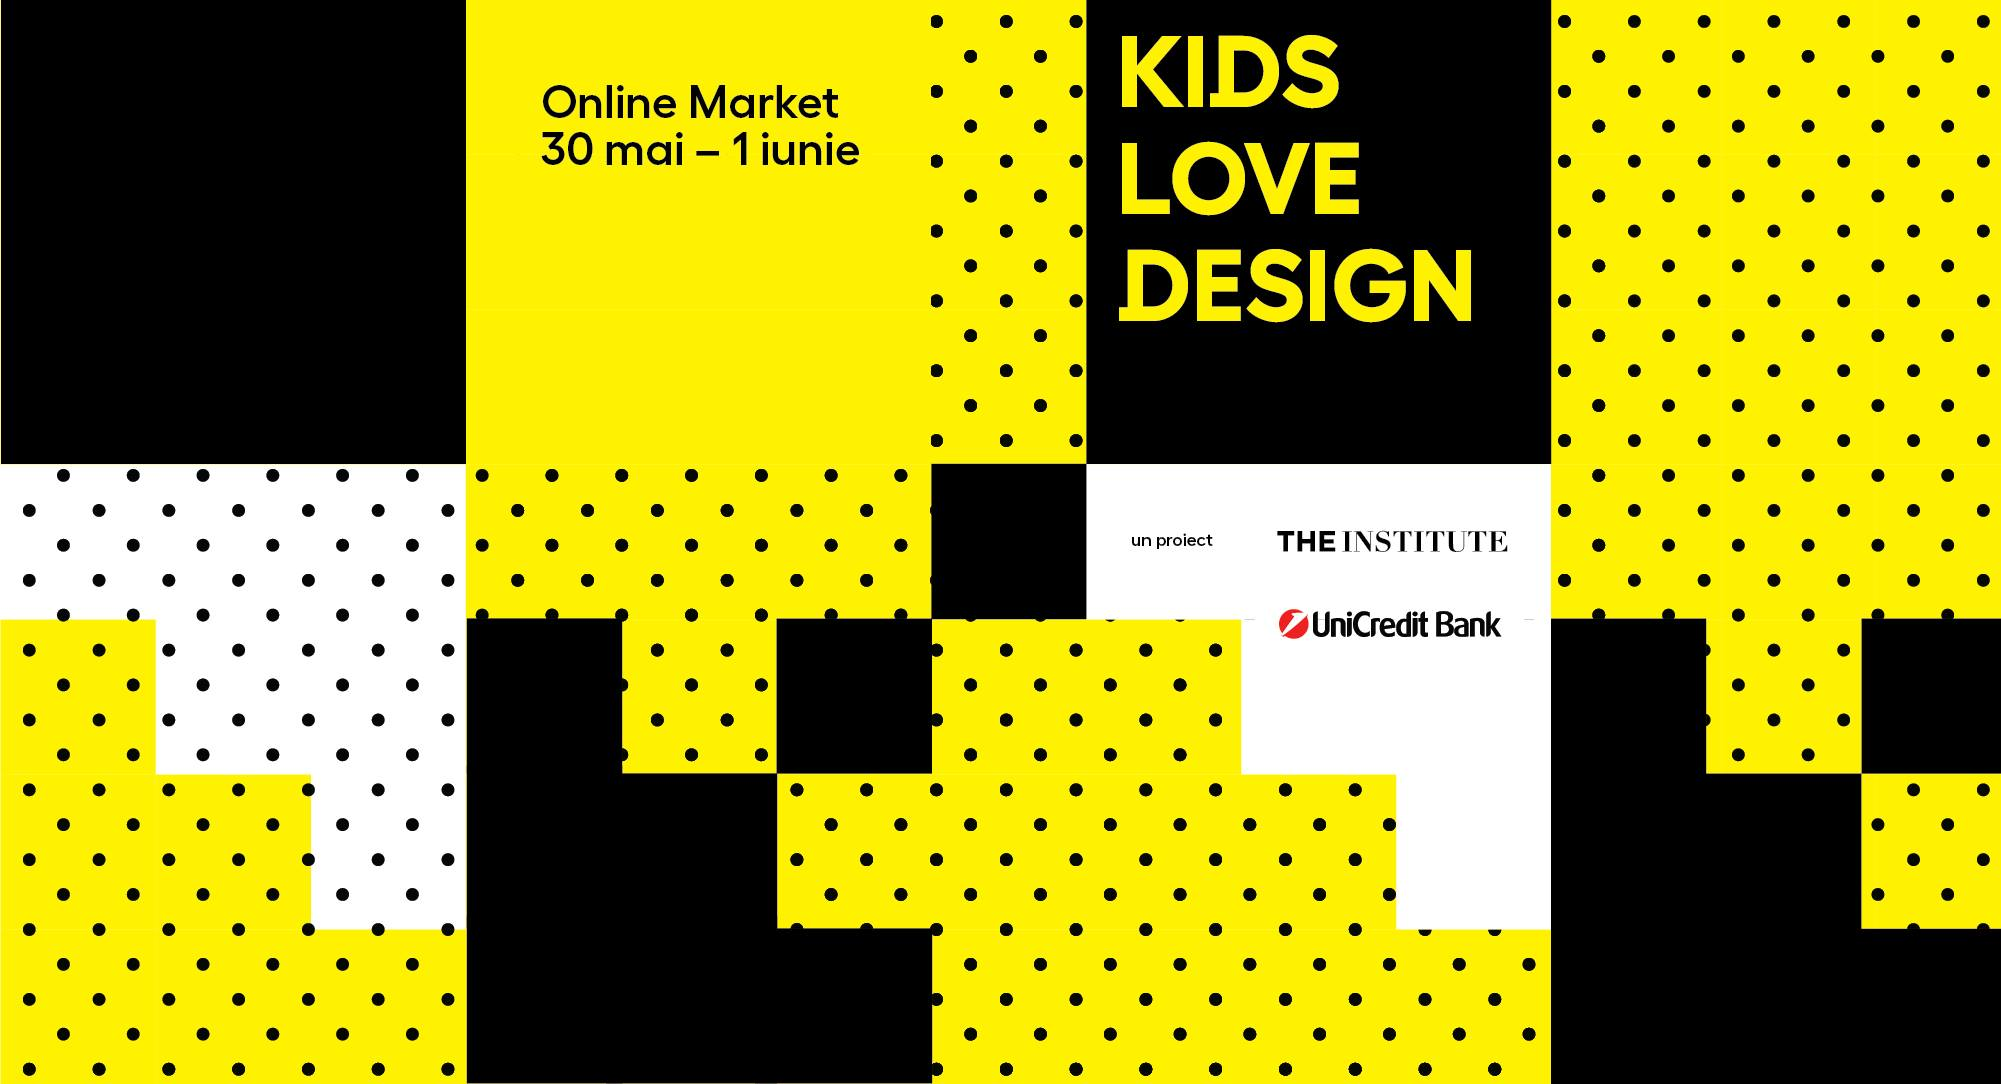 Kids Love Design | Online Market